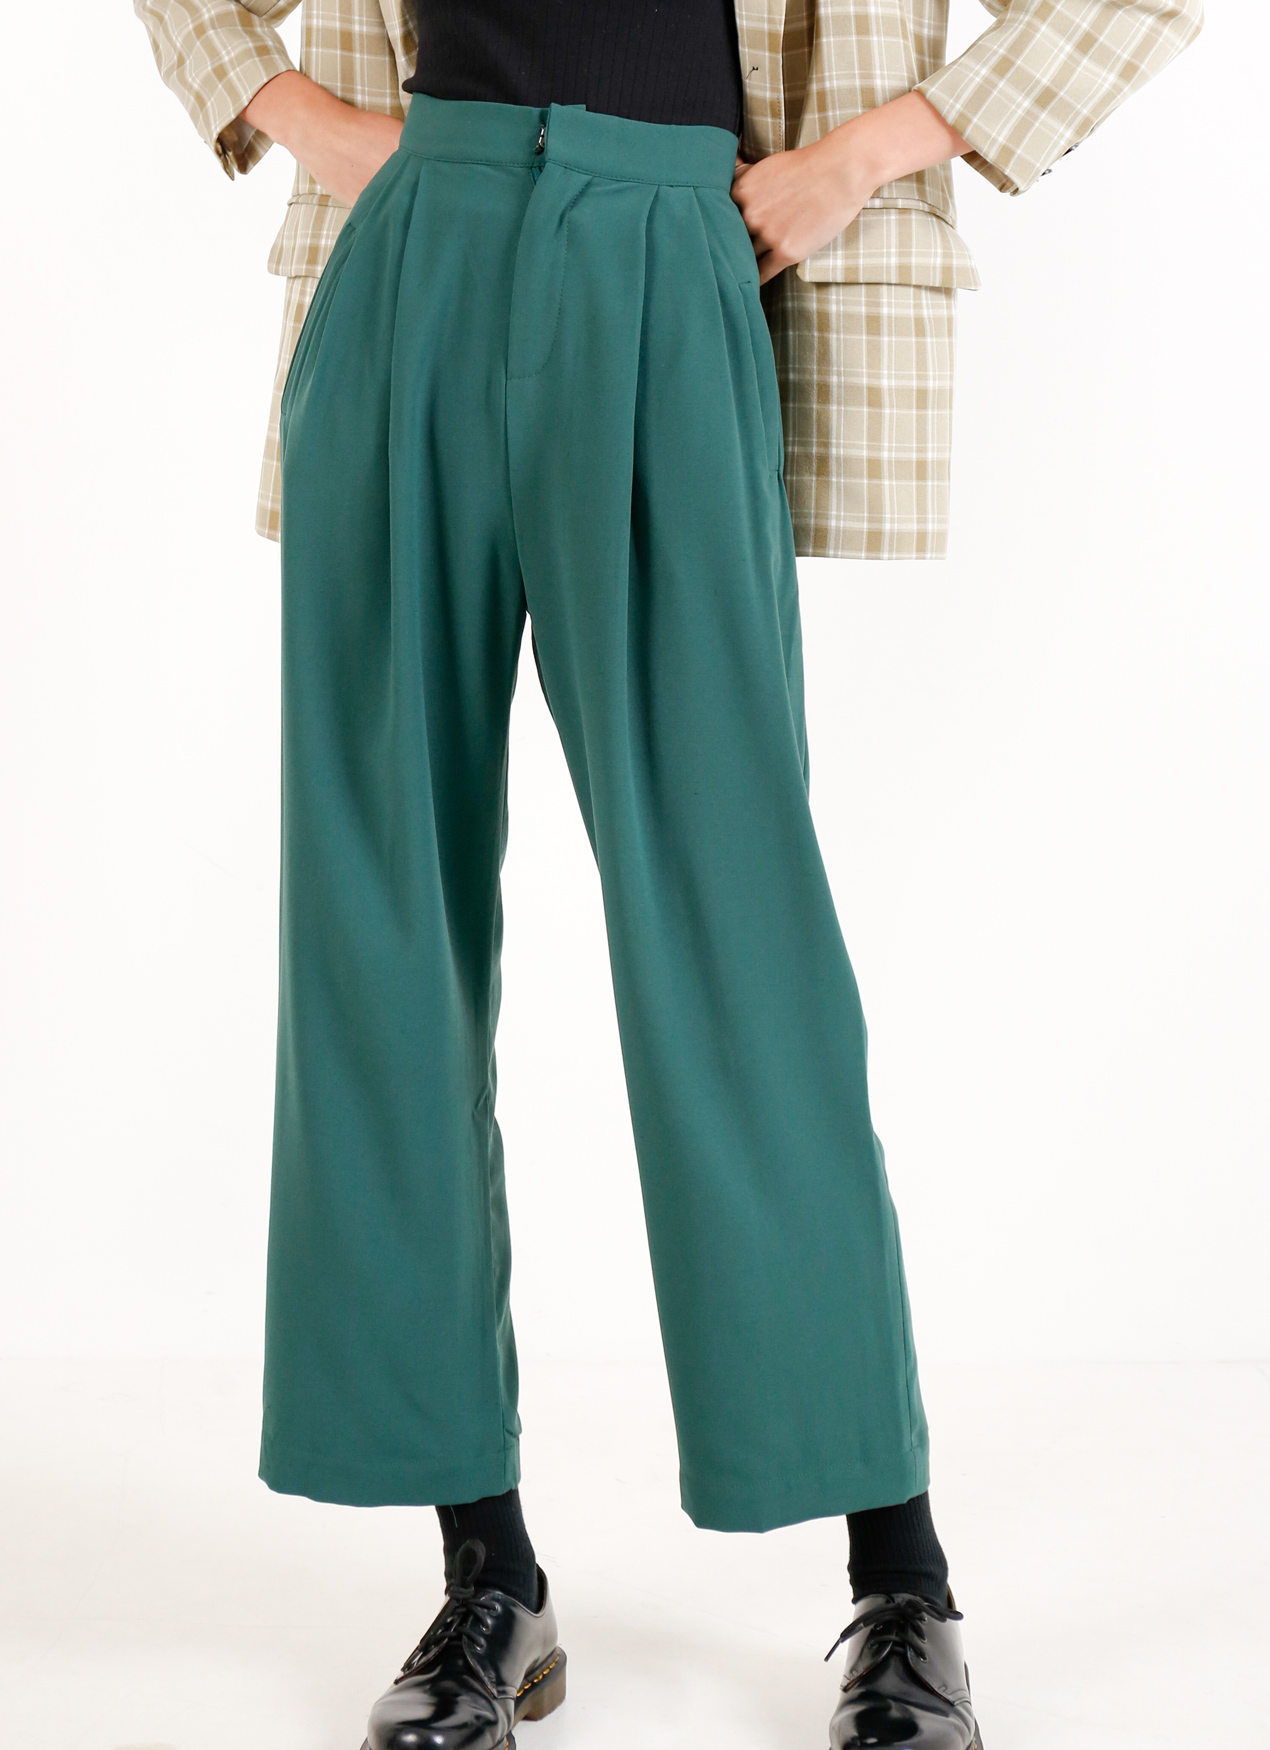 BOWN Veronica Pants - Green